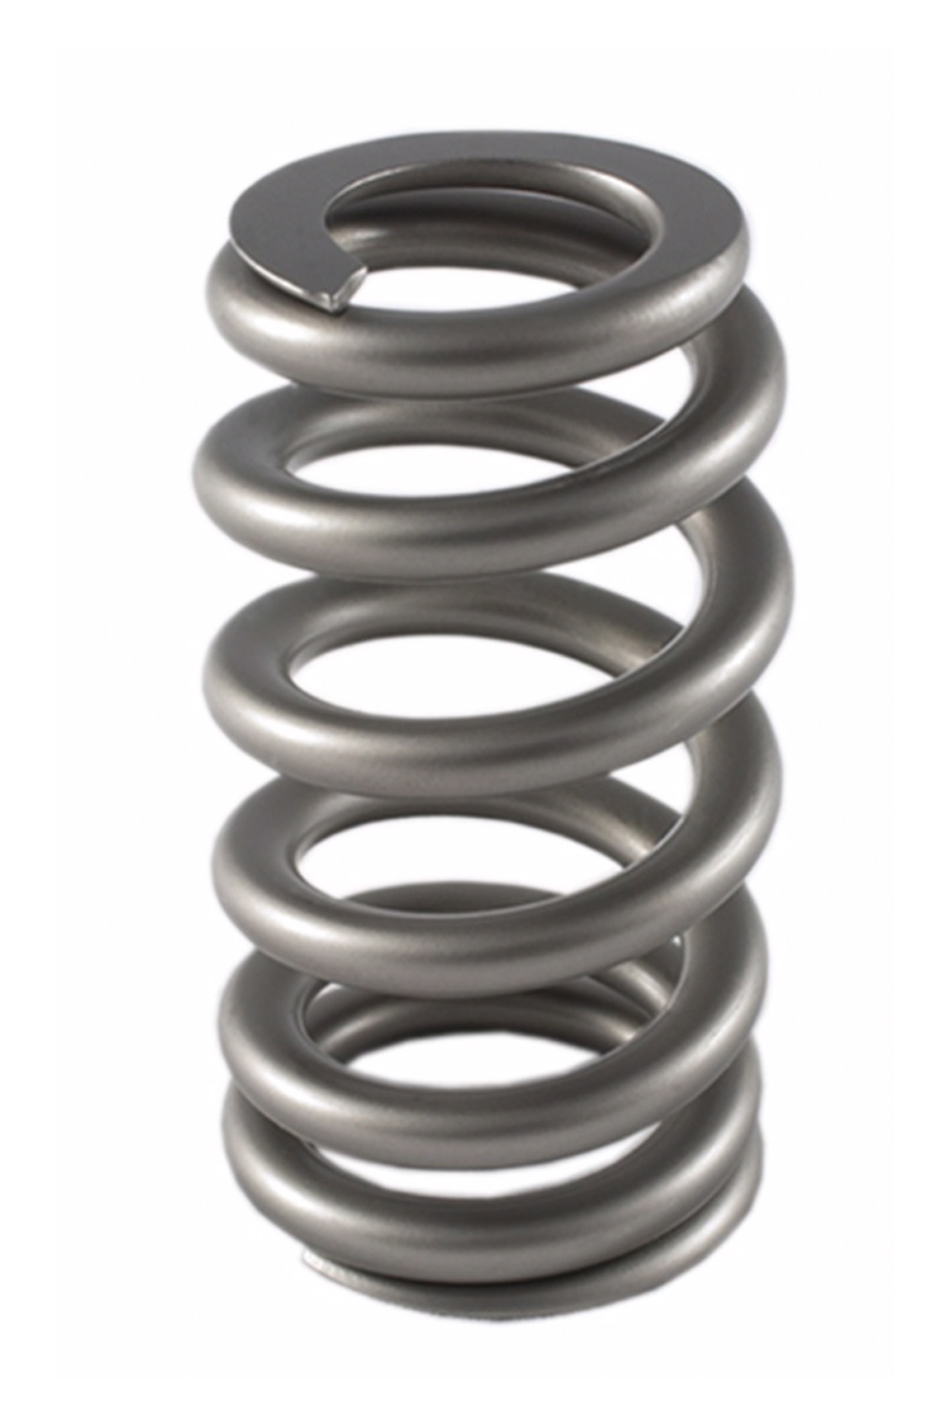 PAC Racing Springs PAC-1234X-1 Valve Spring, 1200 Series, Ovate Beehive Spring, 240 lb/in Spring Rate, 0.941 in Coil Bind, 1.021 in OD, Each